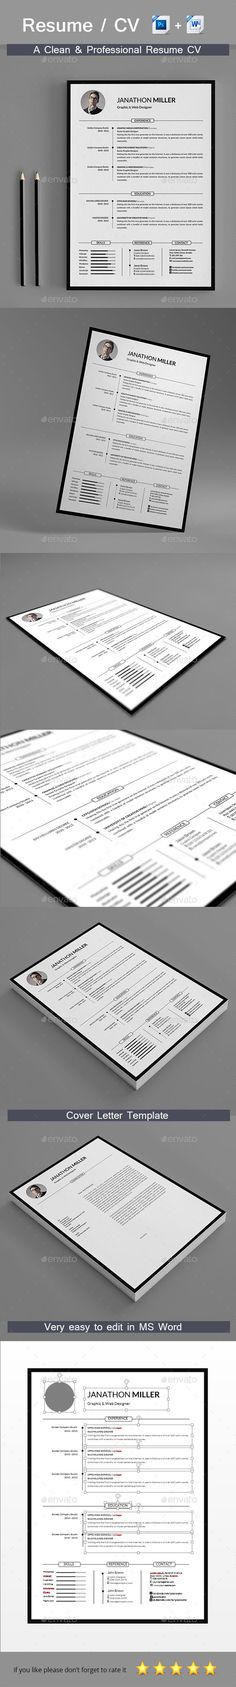 Resume Template PSD, MS Word. Download here: http://graphicriver.net/item/resume-template/16566940?ref=ksioks